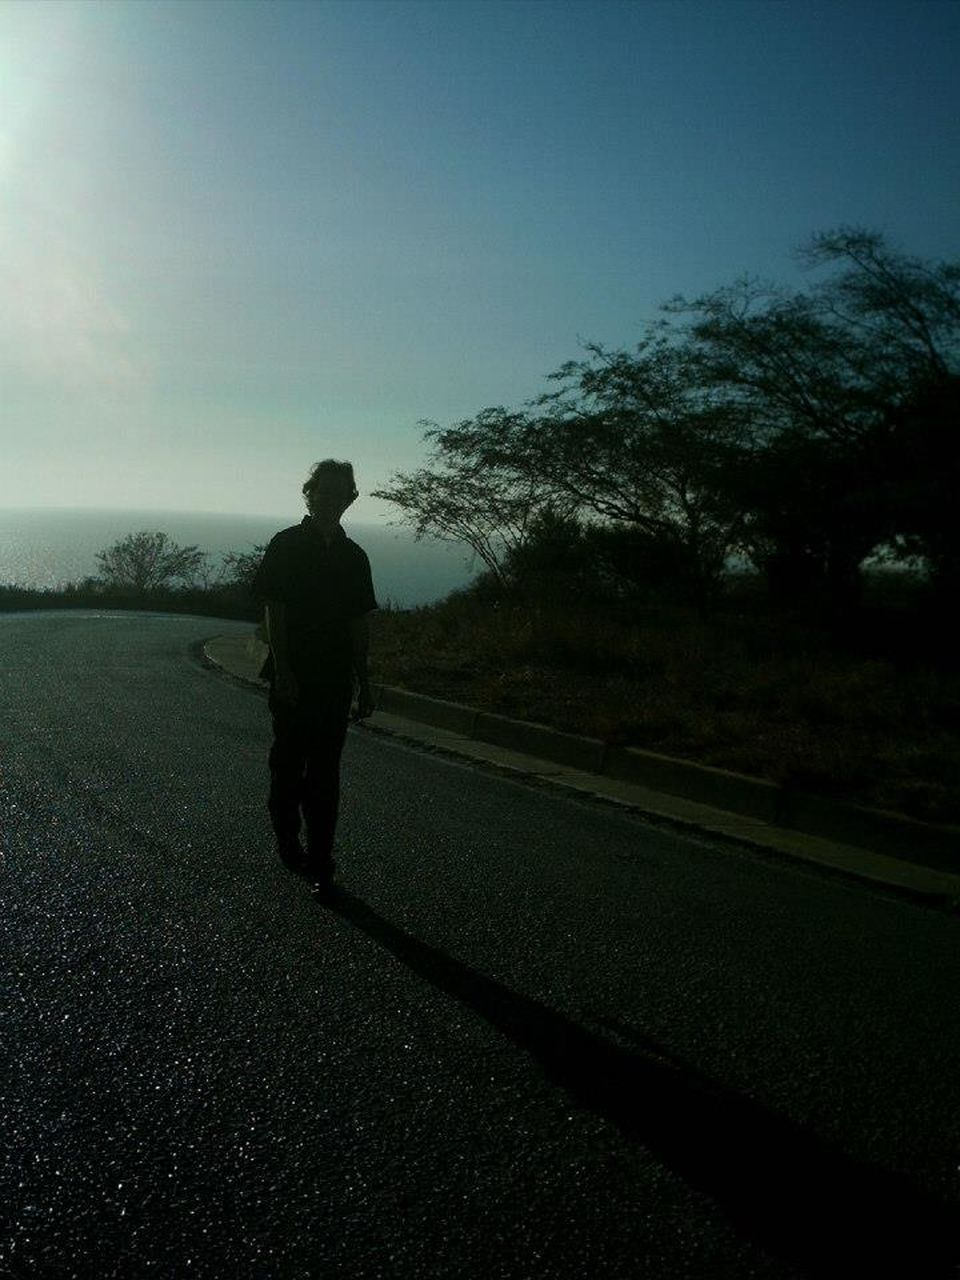 REAR VIEW OF MAN ON COUNTRY ROAD ALONG TREES